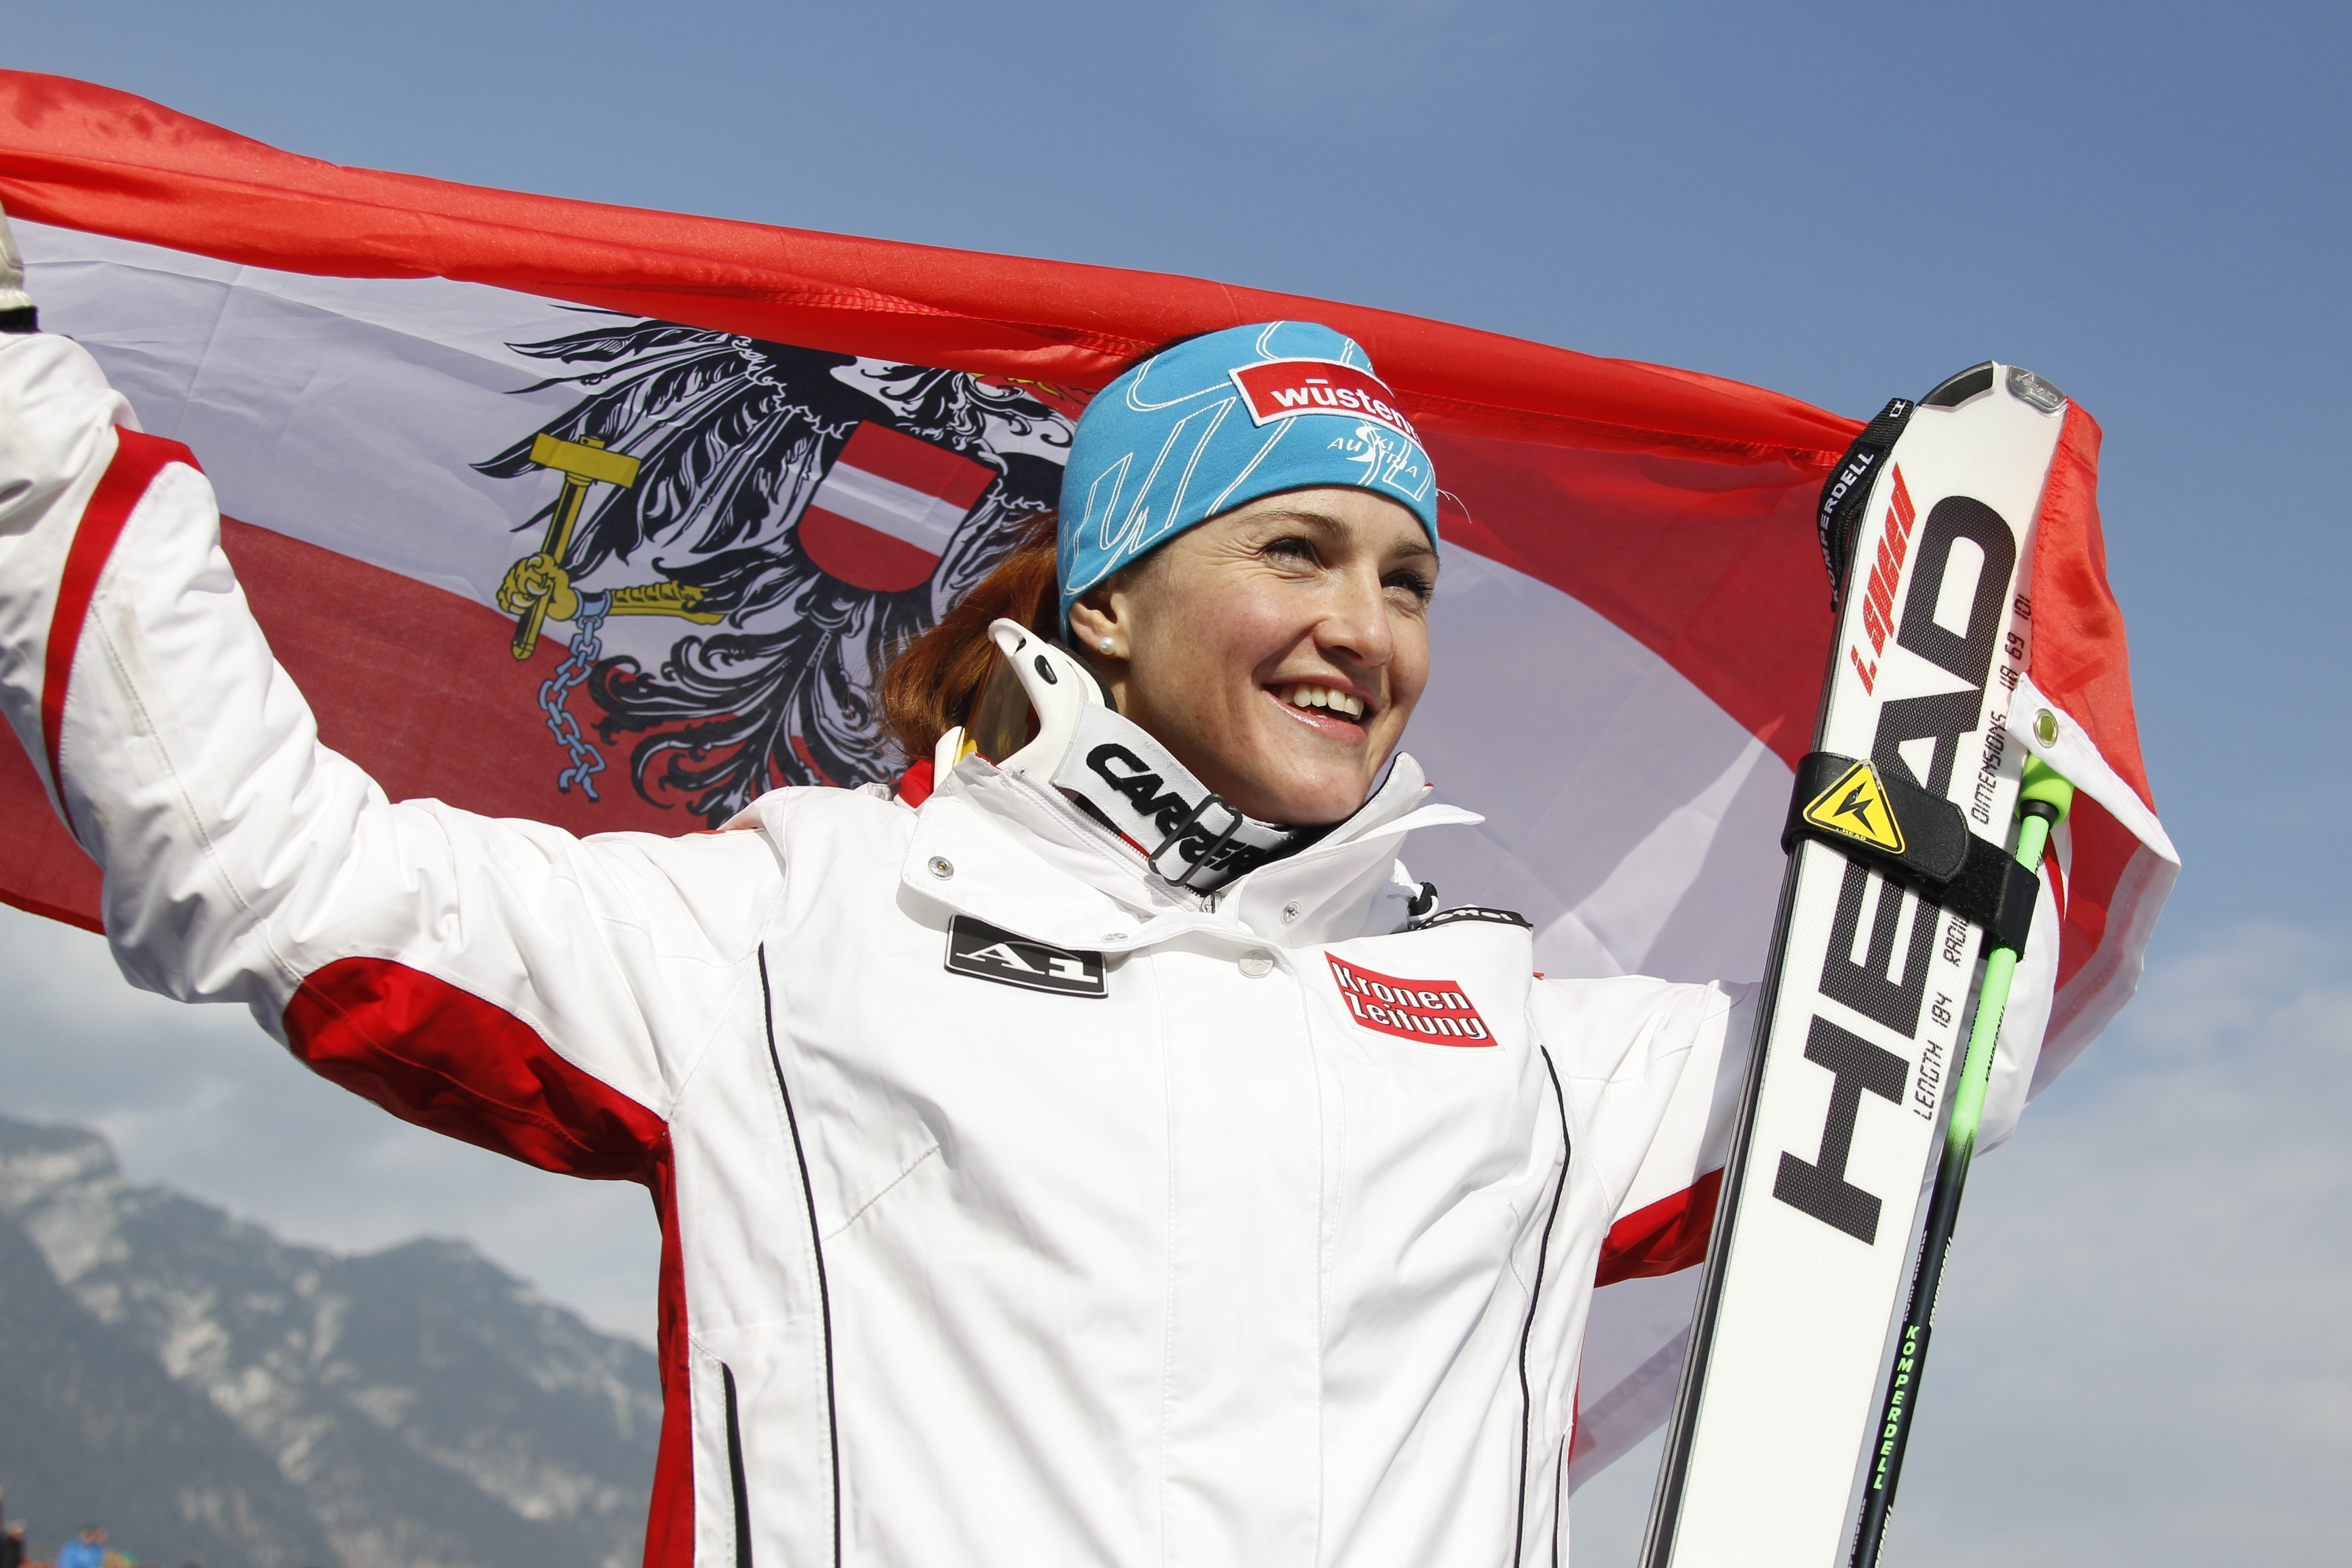 FILE - In this Feb. 13, 2011 file photo Austria's Elisabeth Goergl celebrates with a national flag after winning the women's downhill, at the Alpine World Skiing Championships in Garmisch-Partenkirchen, Germany. Goergl is retiring, 2 years after becoming